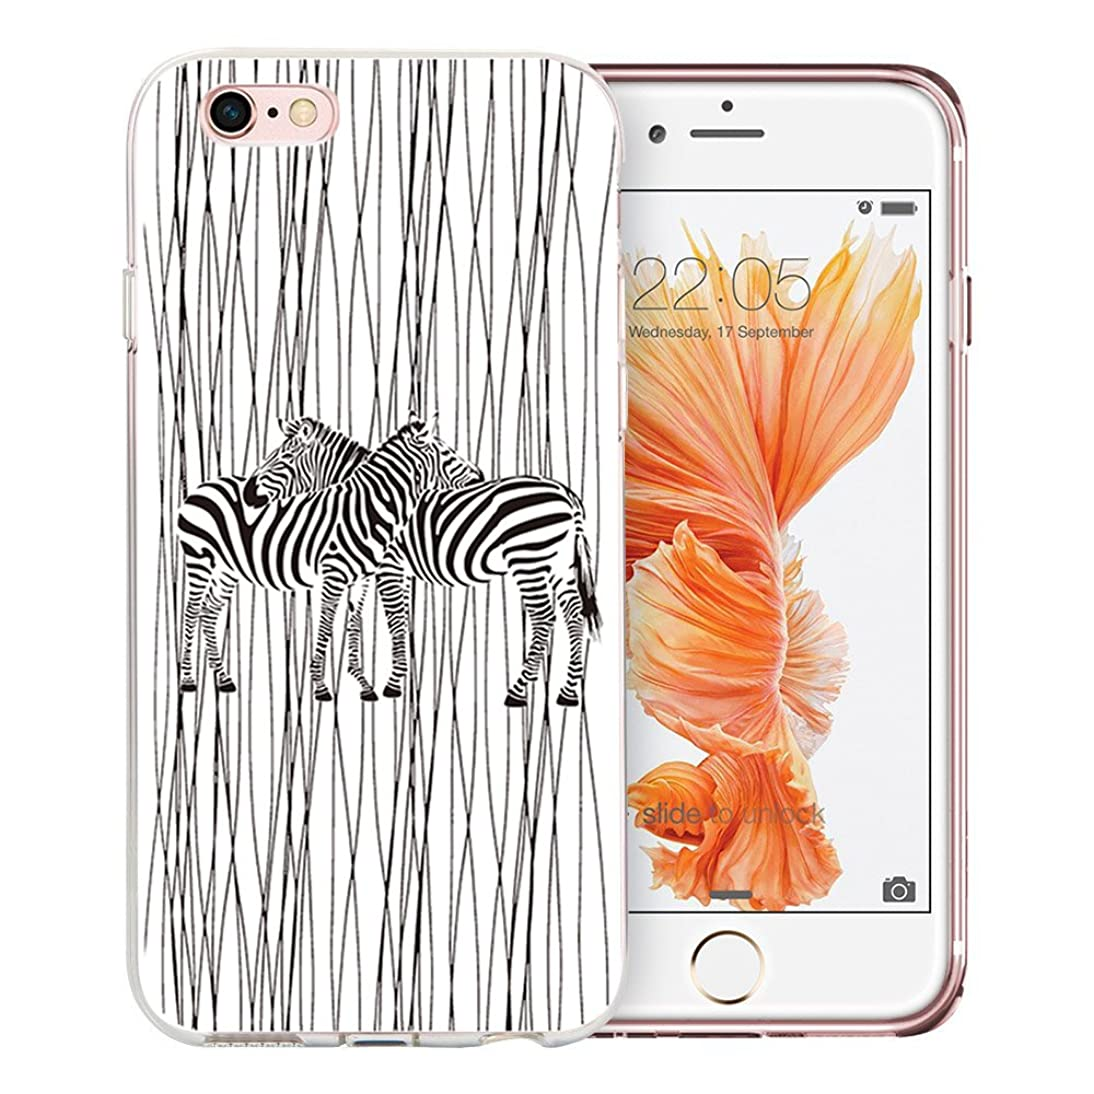 iPhone 6 Case, iPhone 6S Case, Doramifer Illustration Series Protective Case [Anti-Slip] [Good Grip] with Aesthetic 3D Print Soft Back Cover for 4.7 inch iPhone 6/6S (Zebra) qfhi302737279746